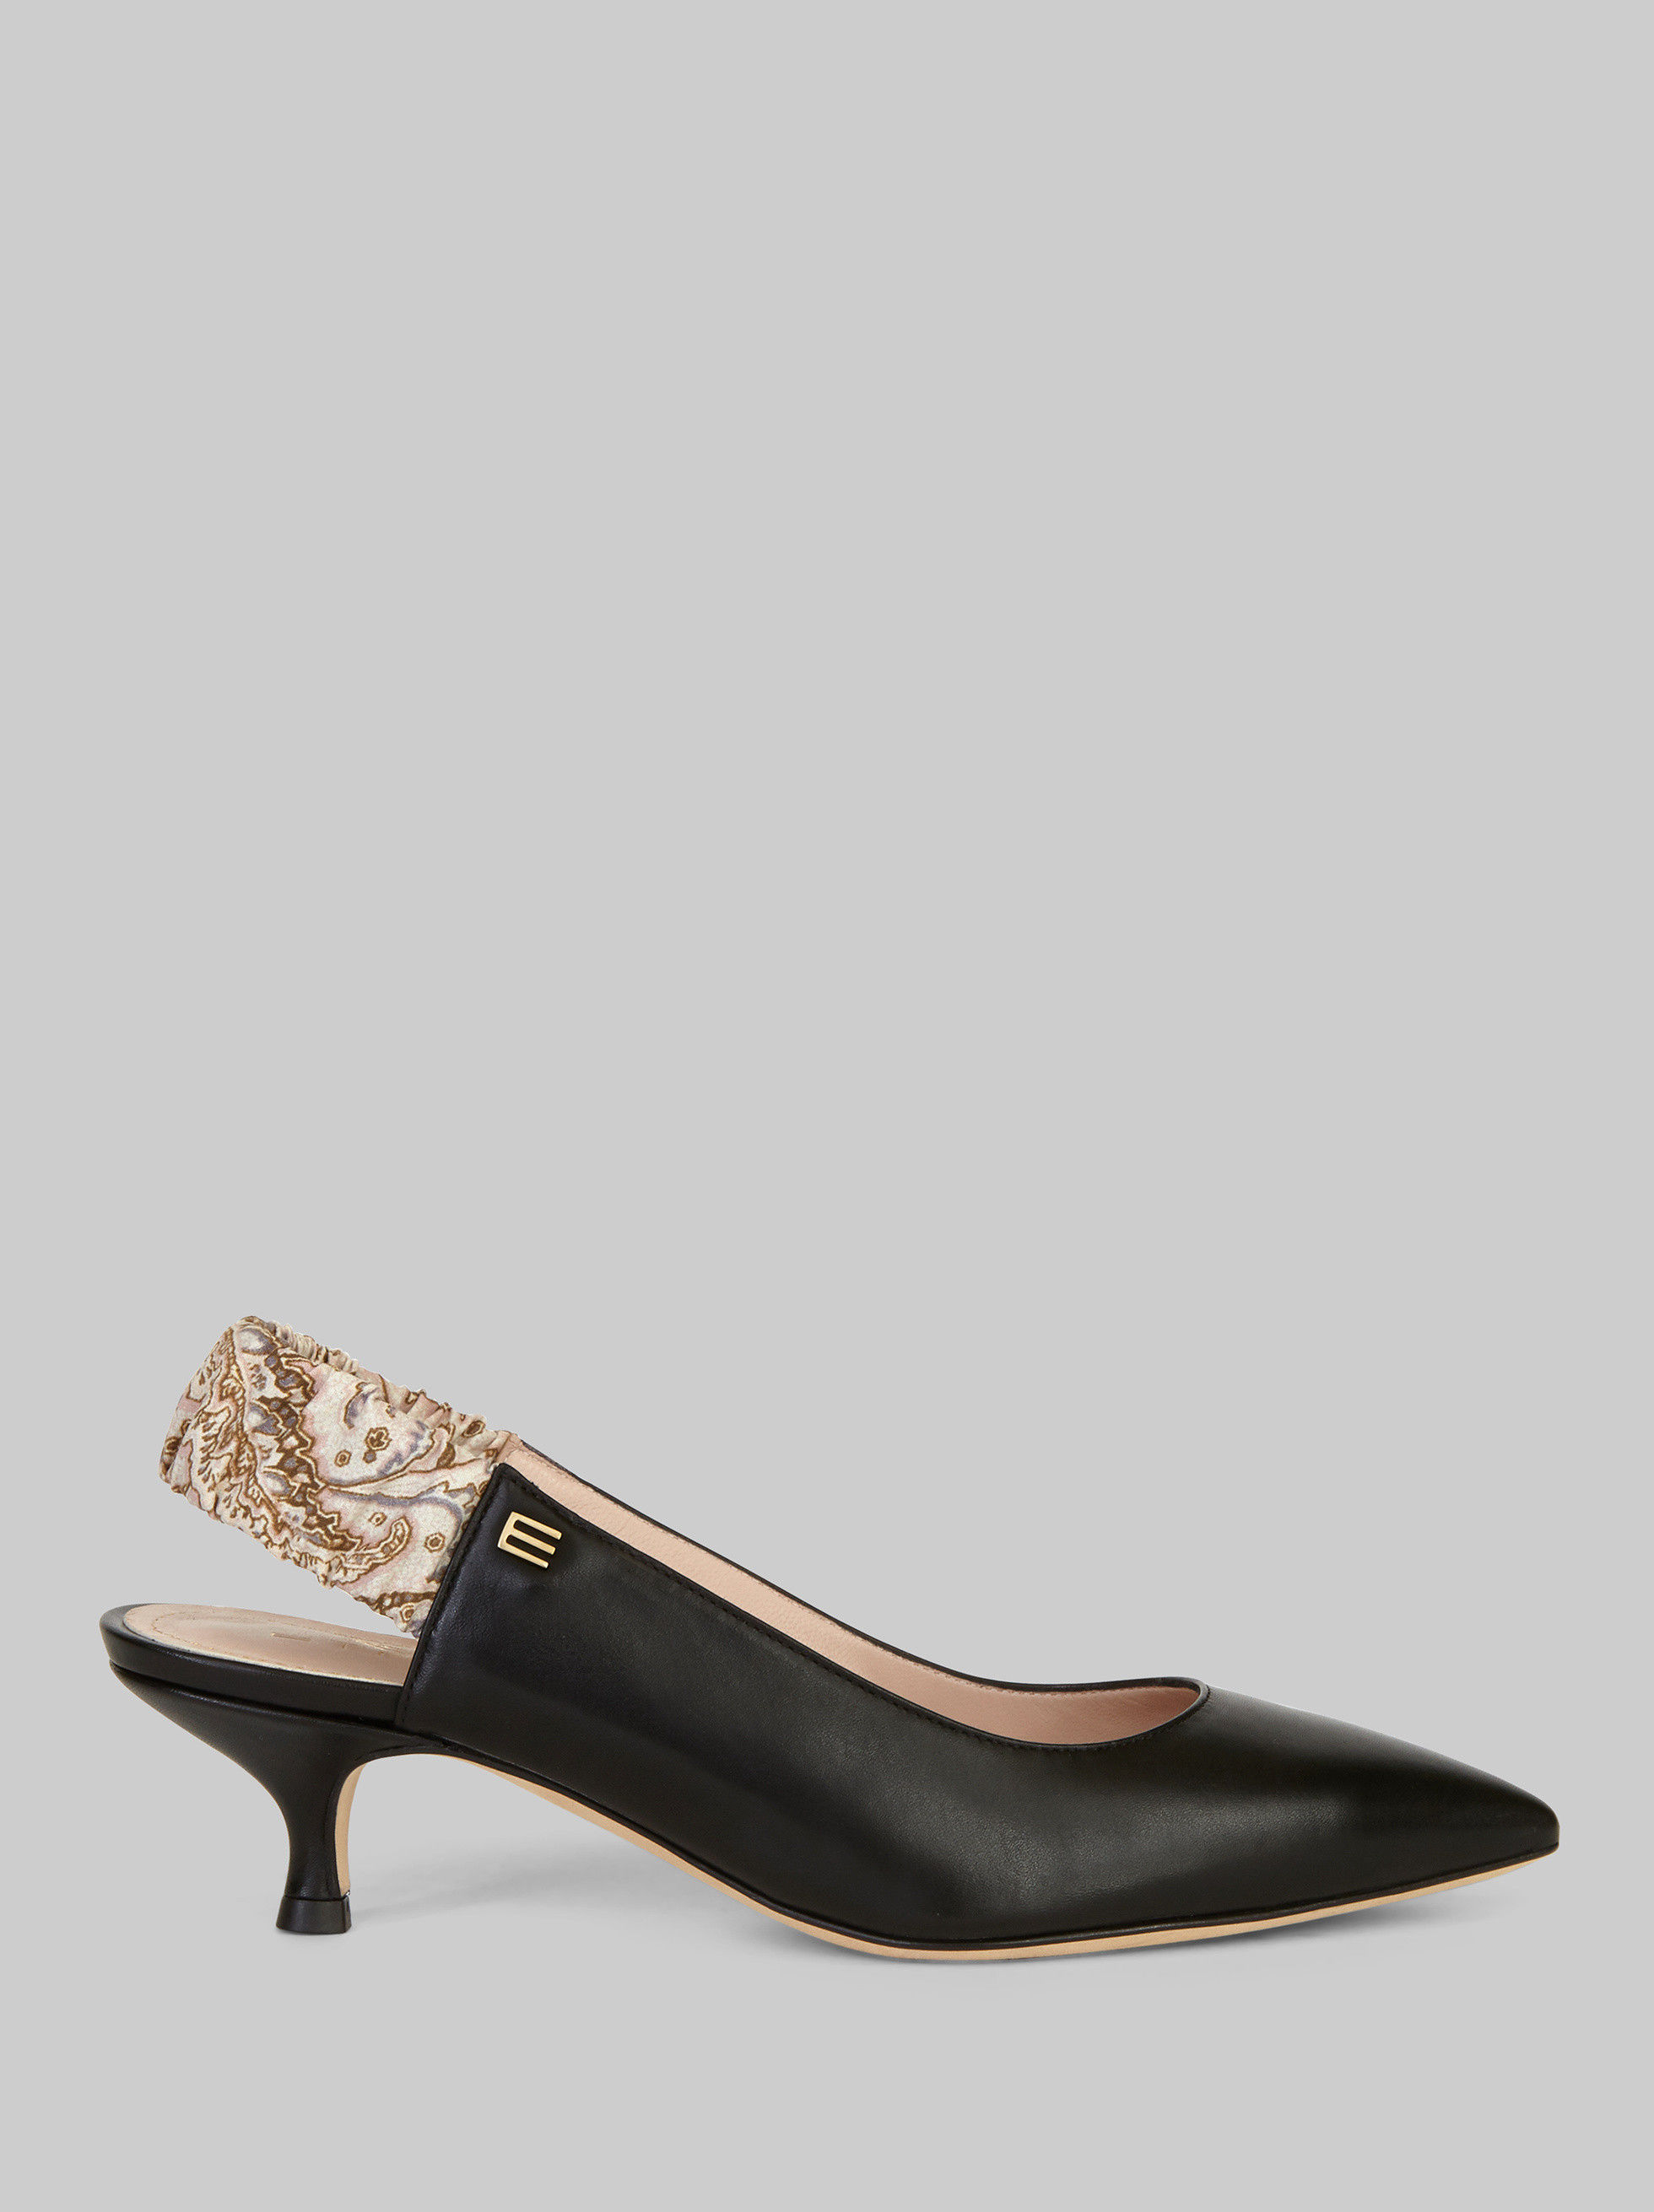 LEATHER COURT SHOE WITH PAISLEY STRAP